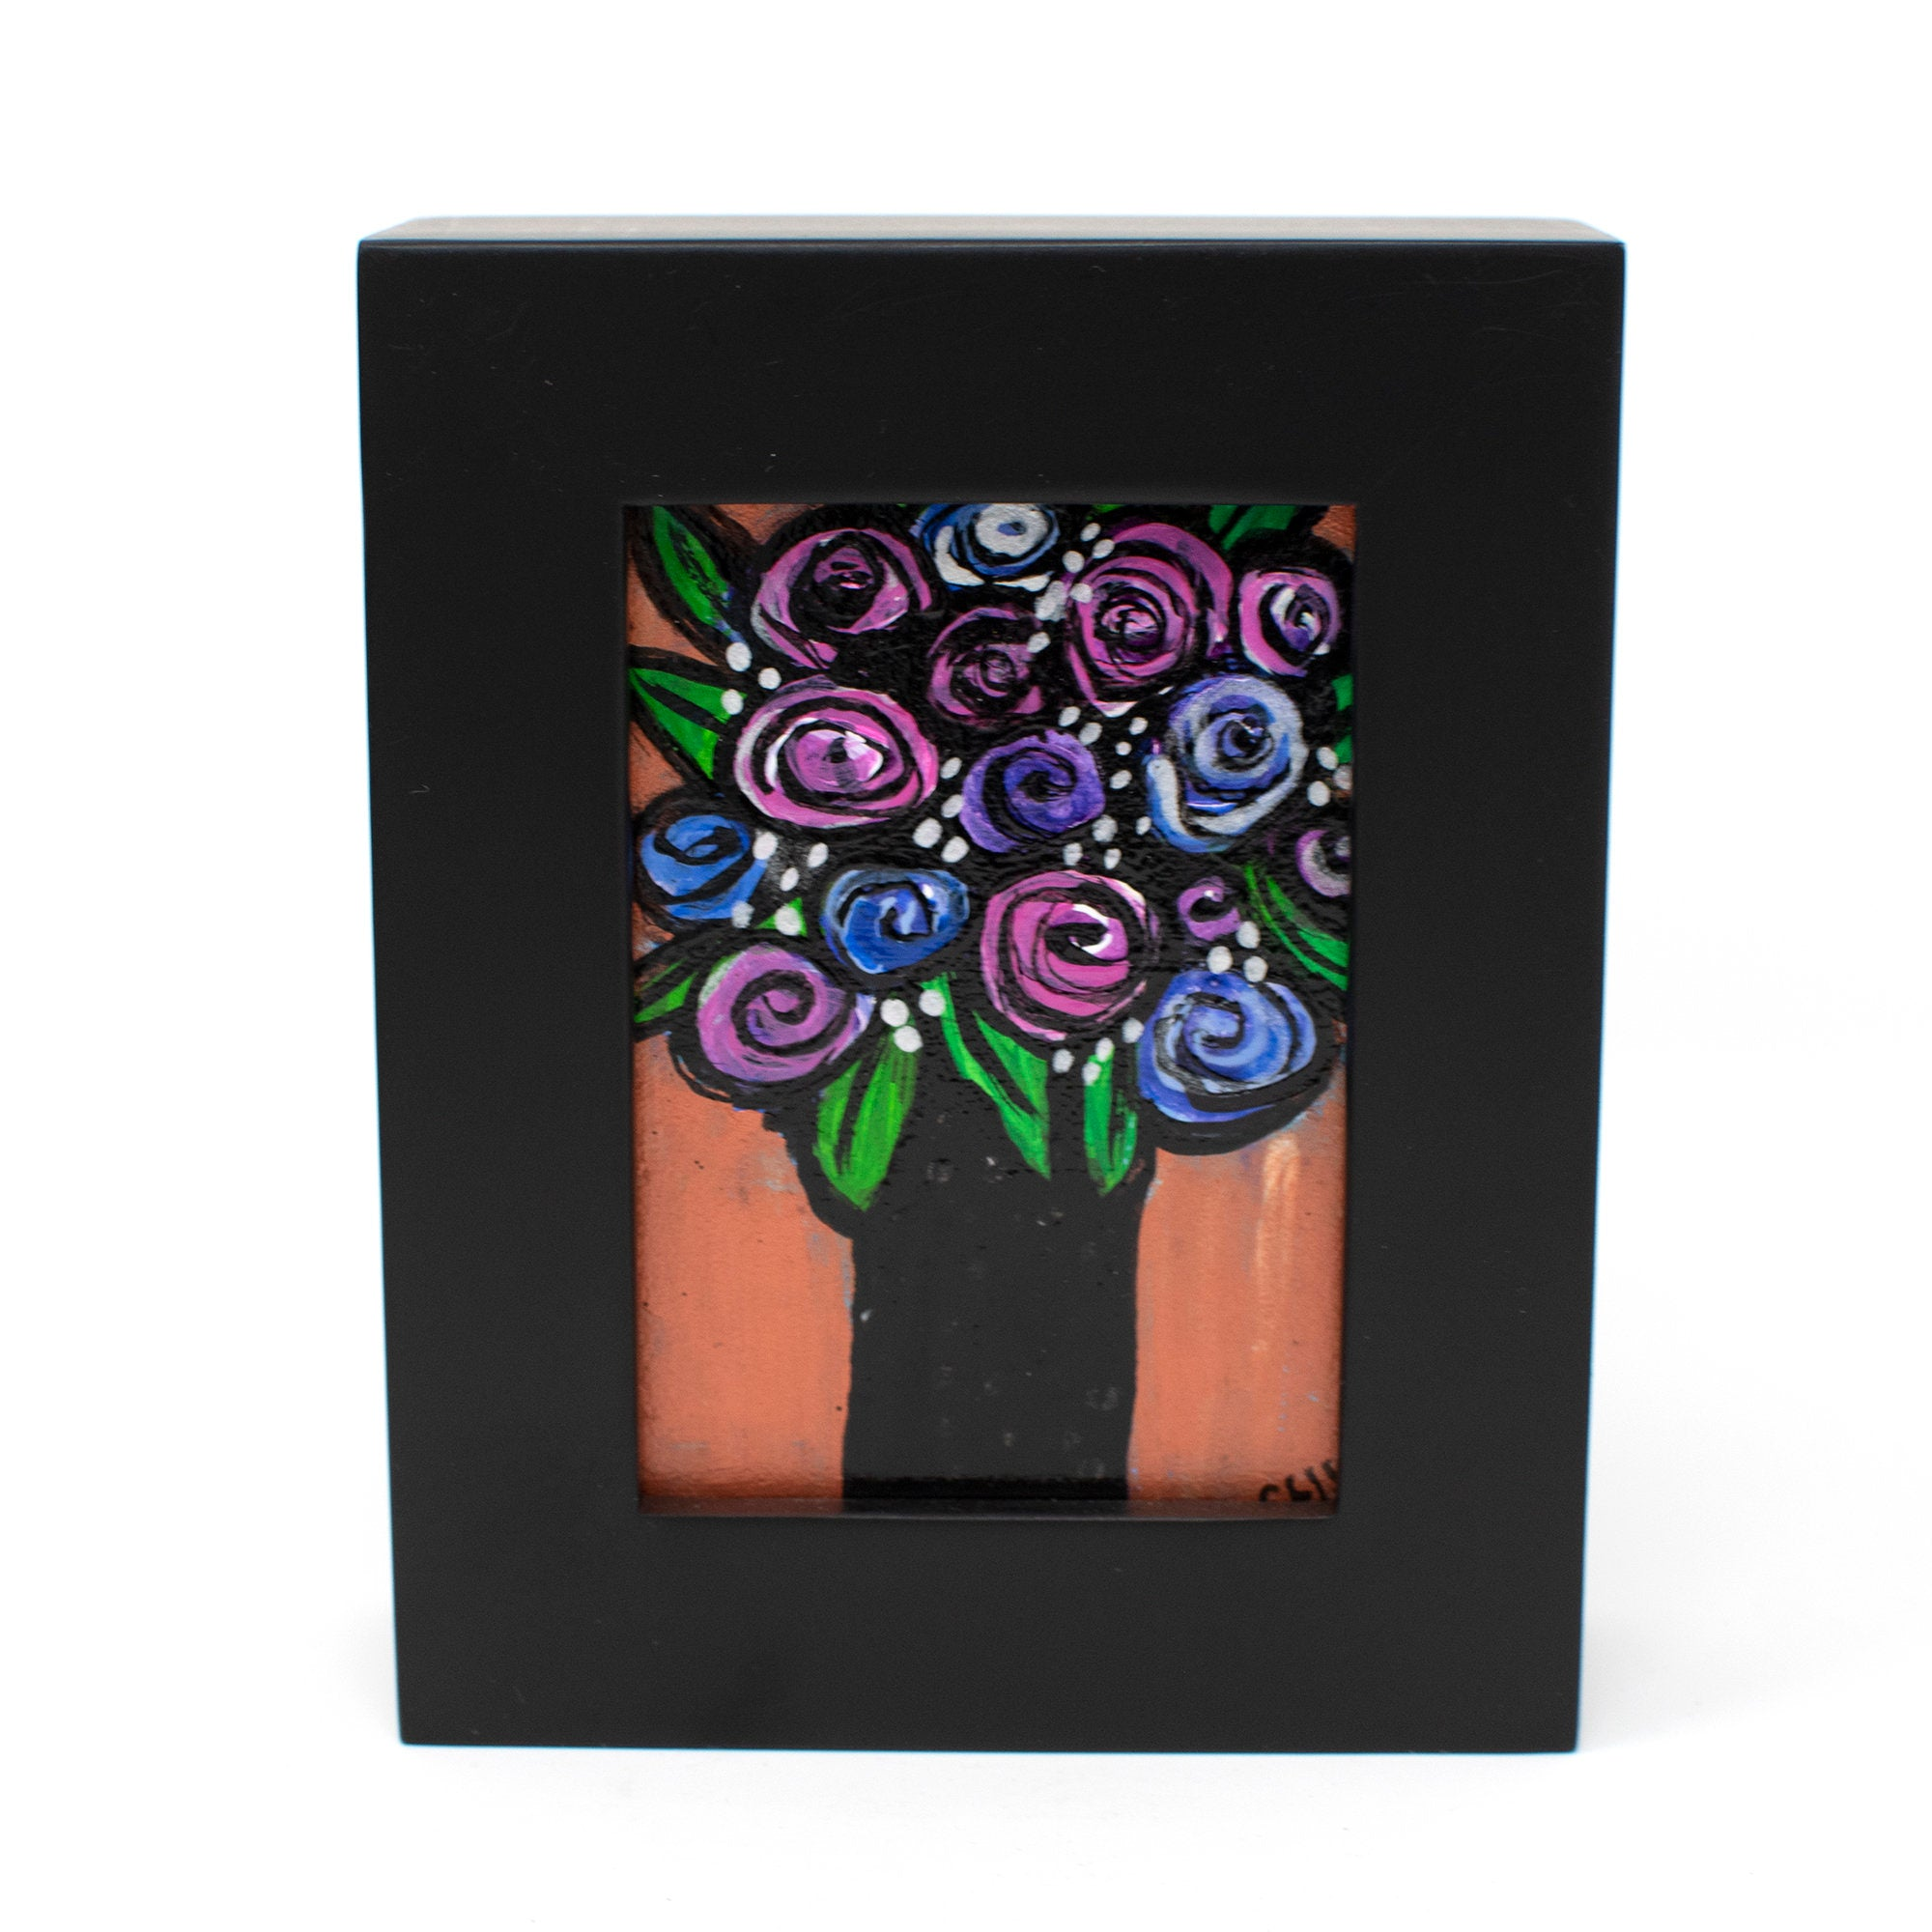 Small Rose Painting - Mini Flower Art in Frame